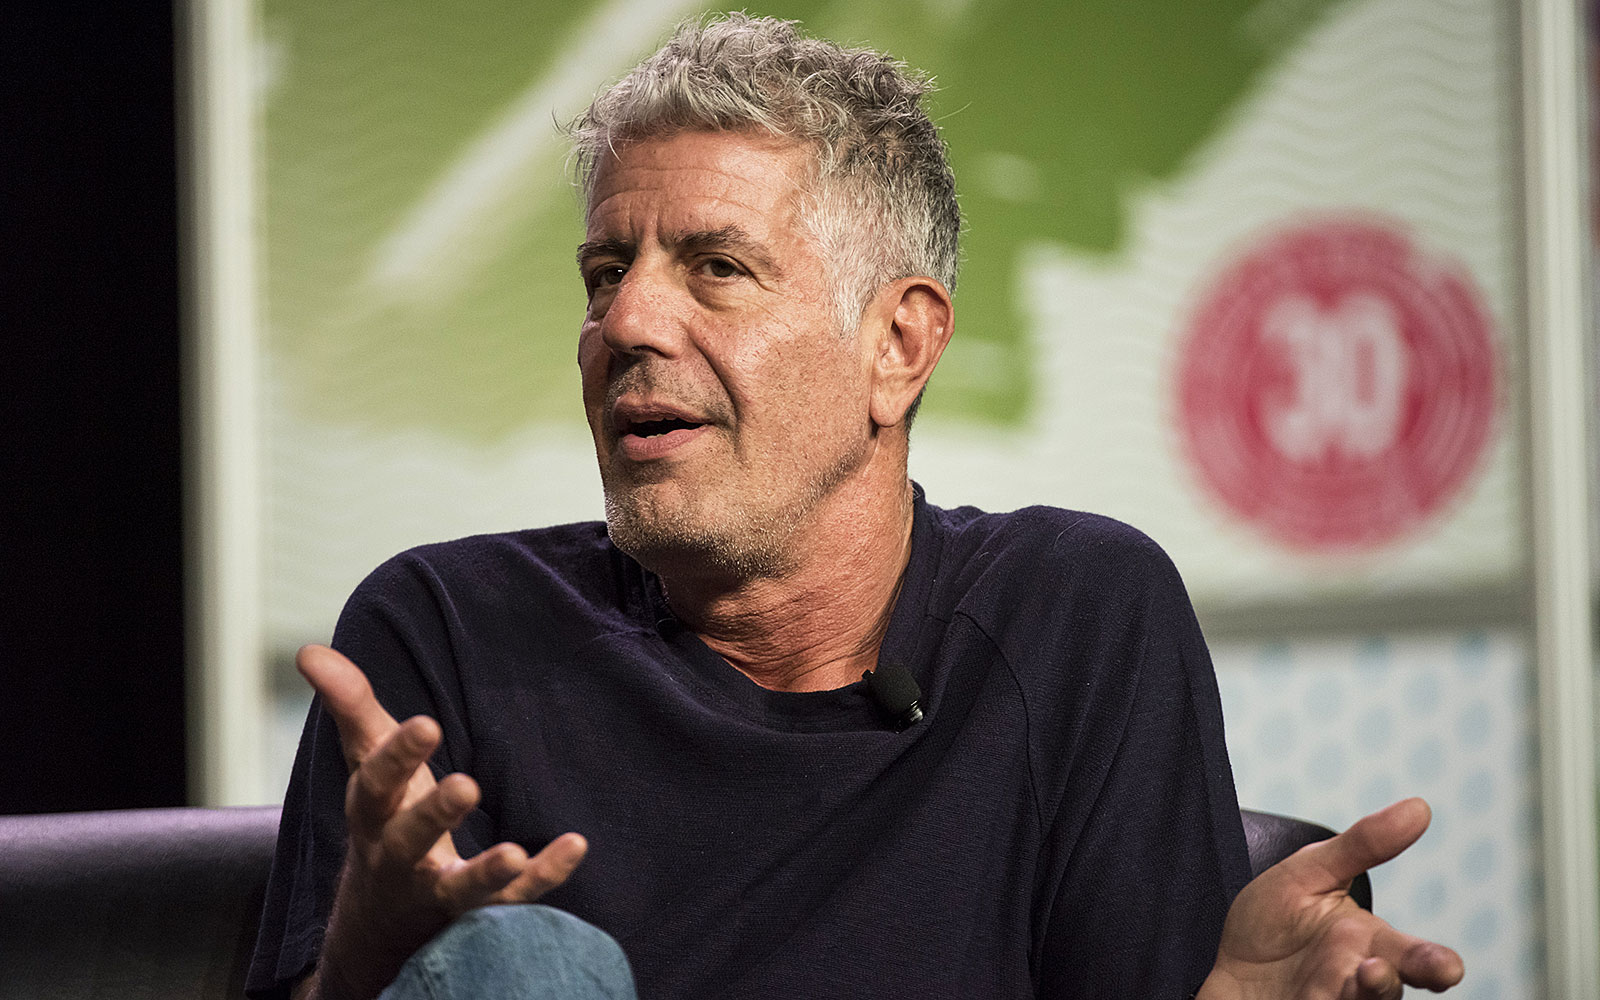 Anthony Bourdain's Top 5 New York City Restaurants